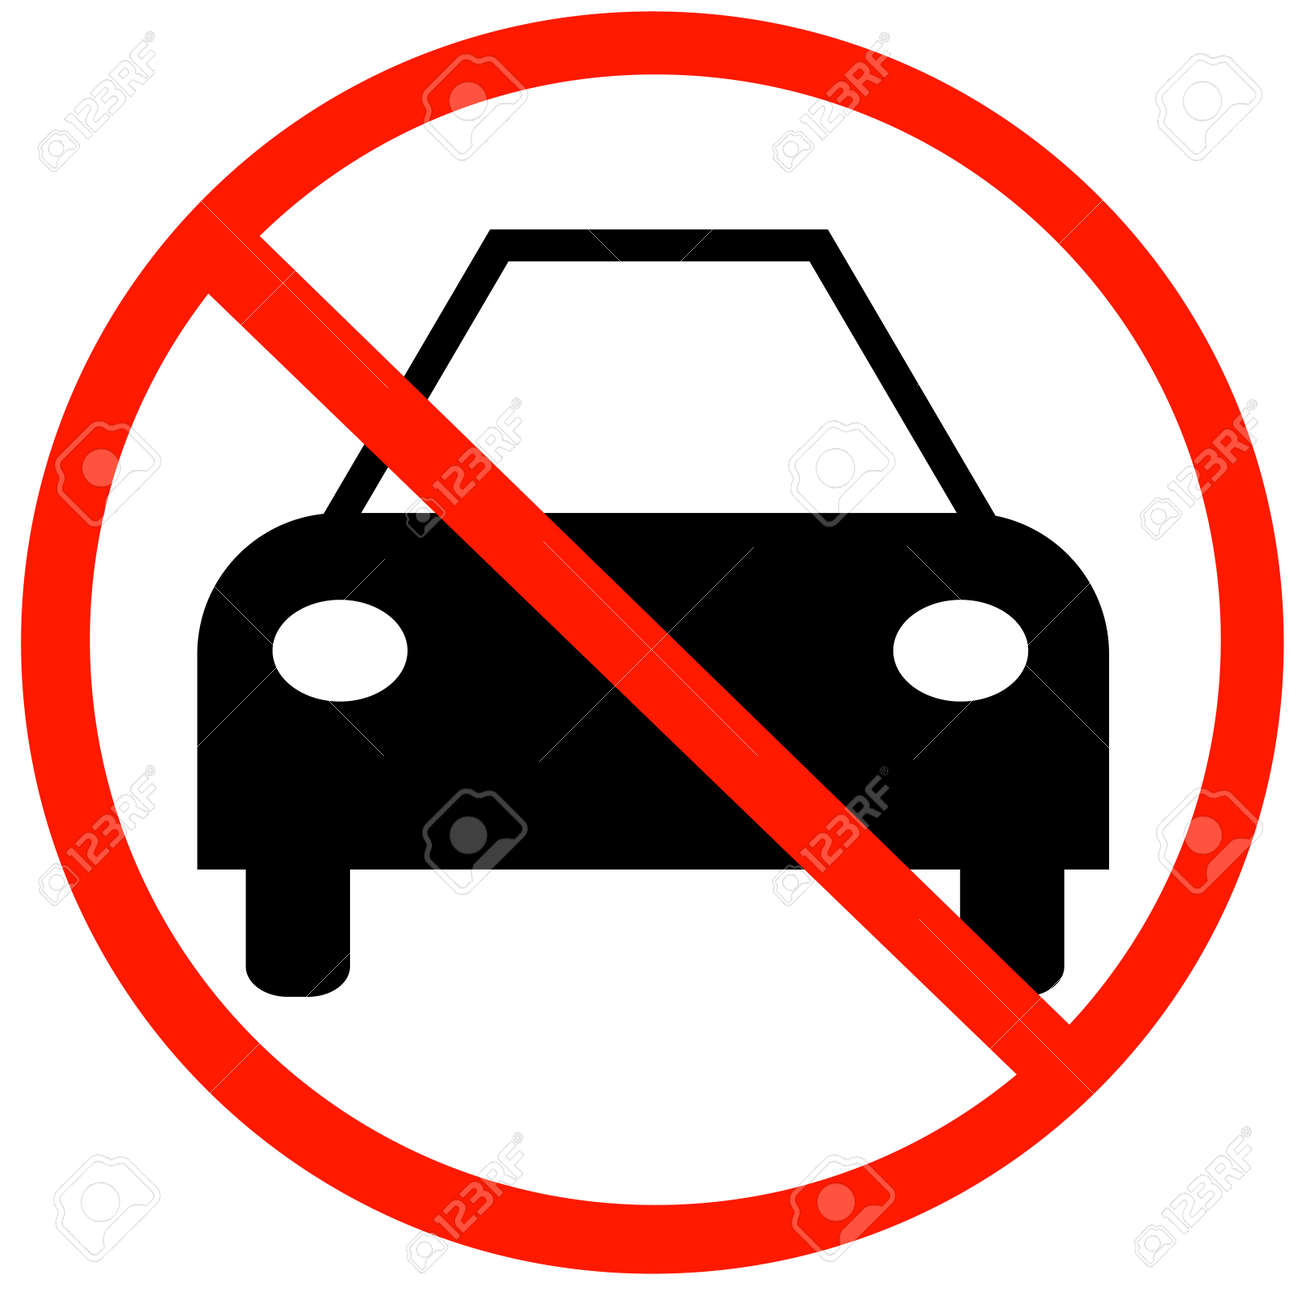 car with not allowed symbol - no cars allowed Stock Vector - 3410303